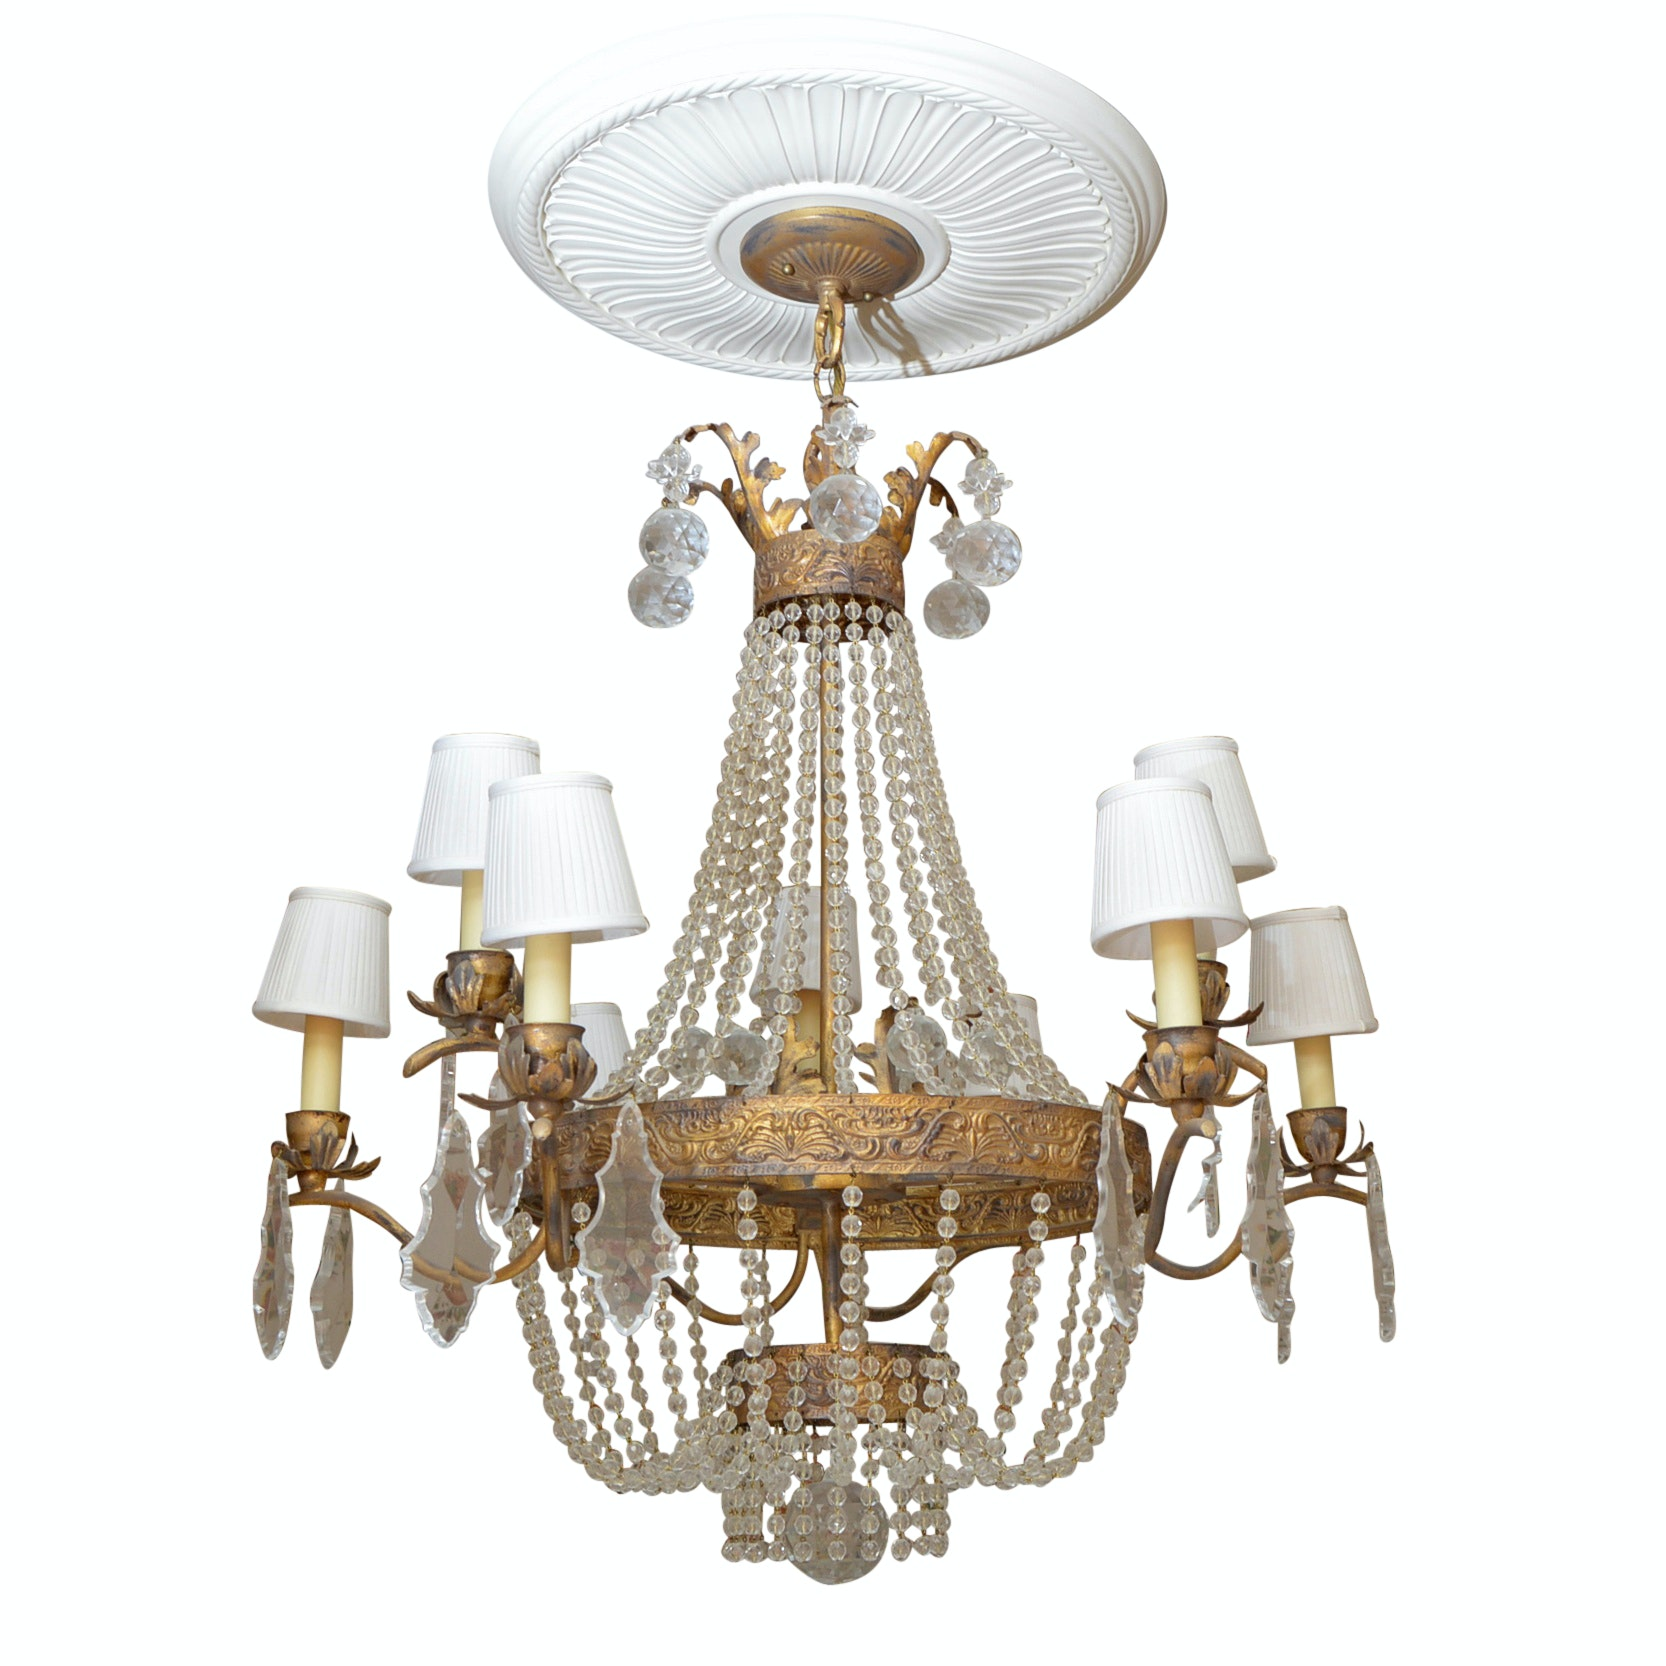 Vintage Neoclassical Style Crystal and Gilt Metal Chandelier